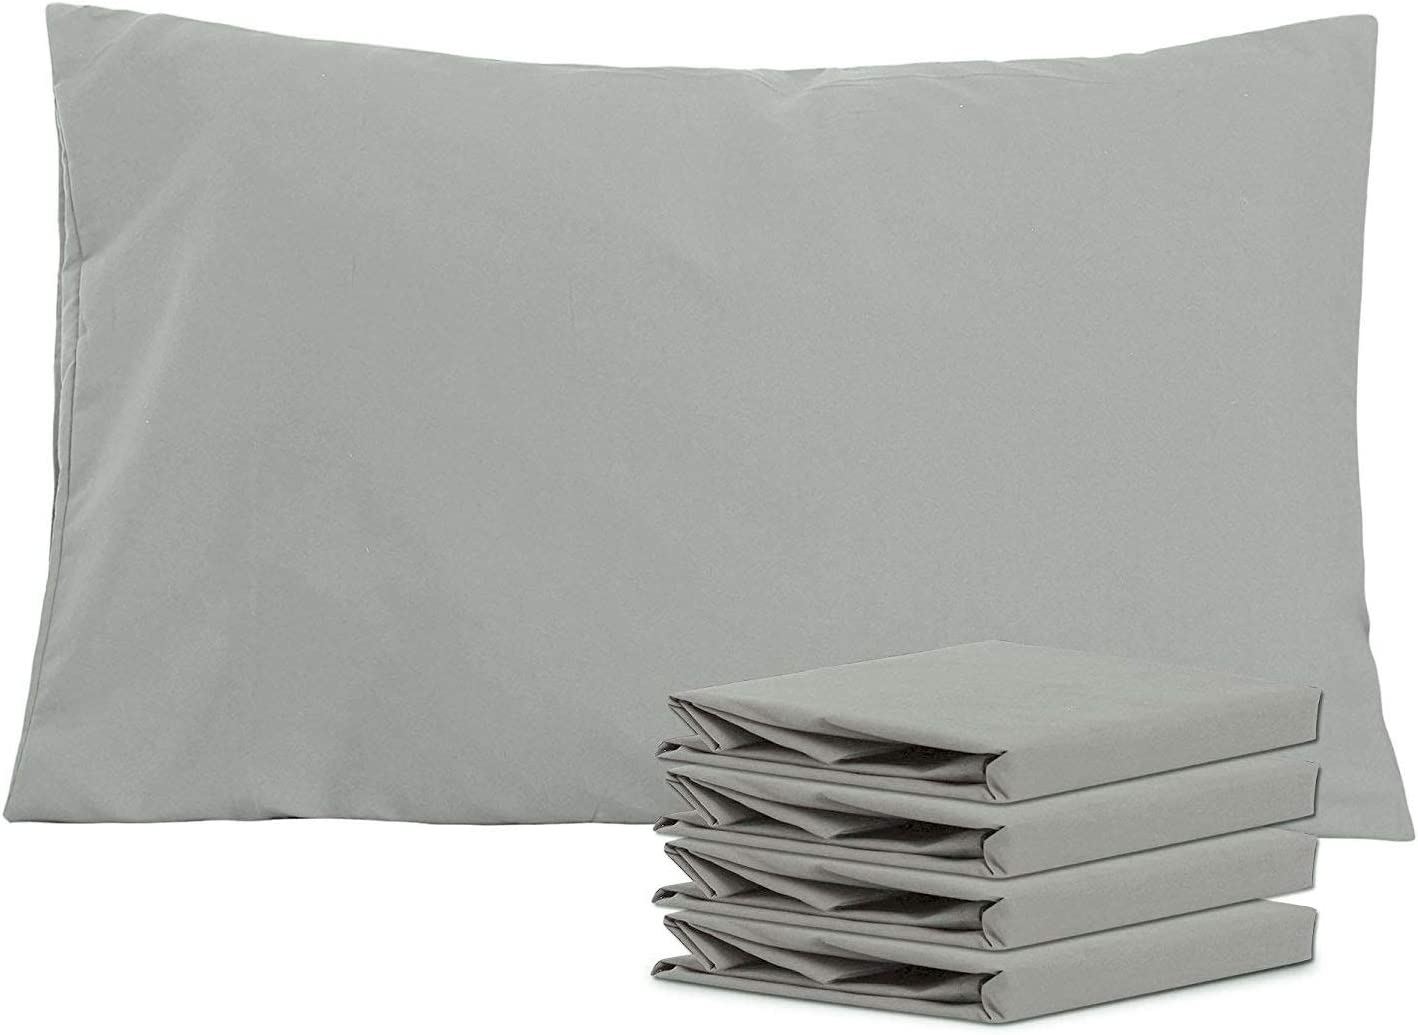 NTBAY Queen Pillowcases Set of 4, 100% Brushed Microfiber, Soft and Cozy, Wrinkle, Fade, Stain Resistant, Queen, Smoky Grey